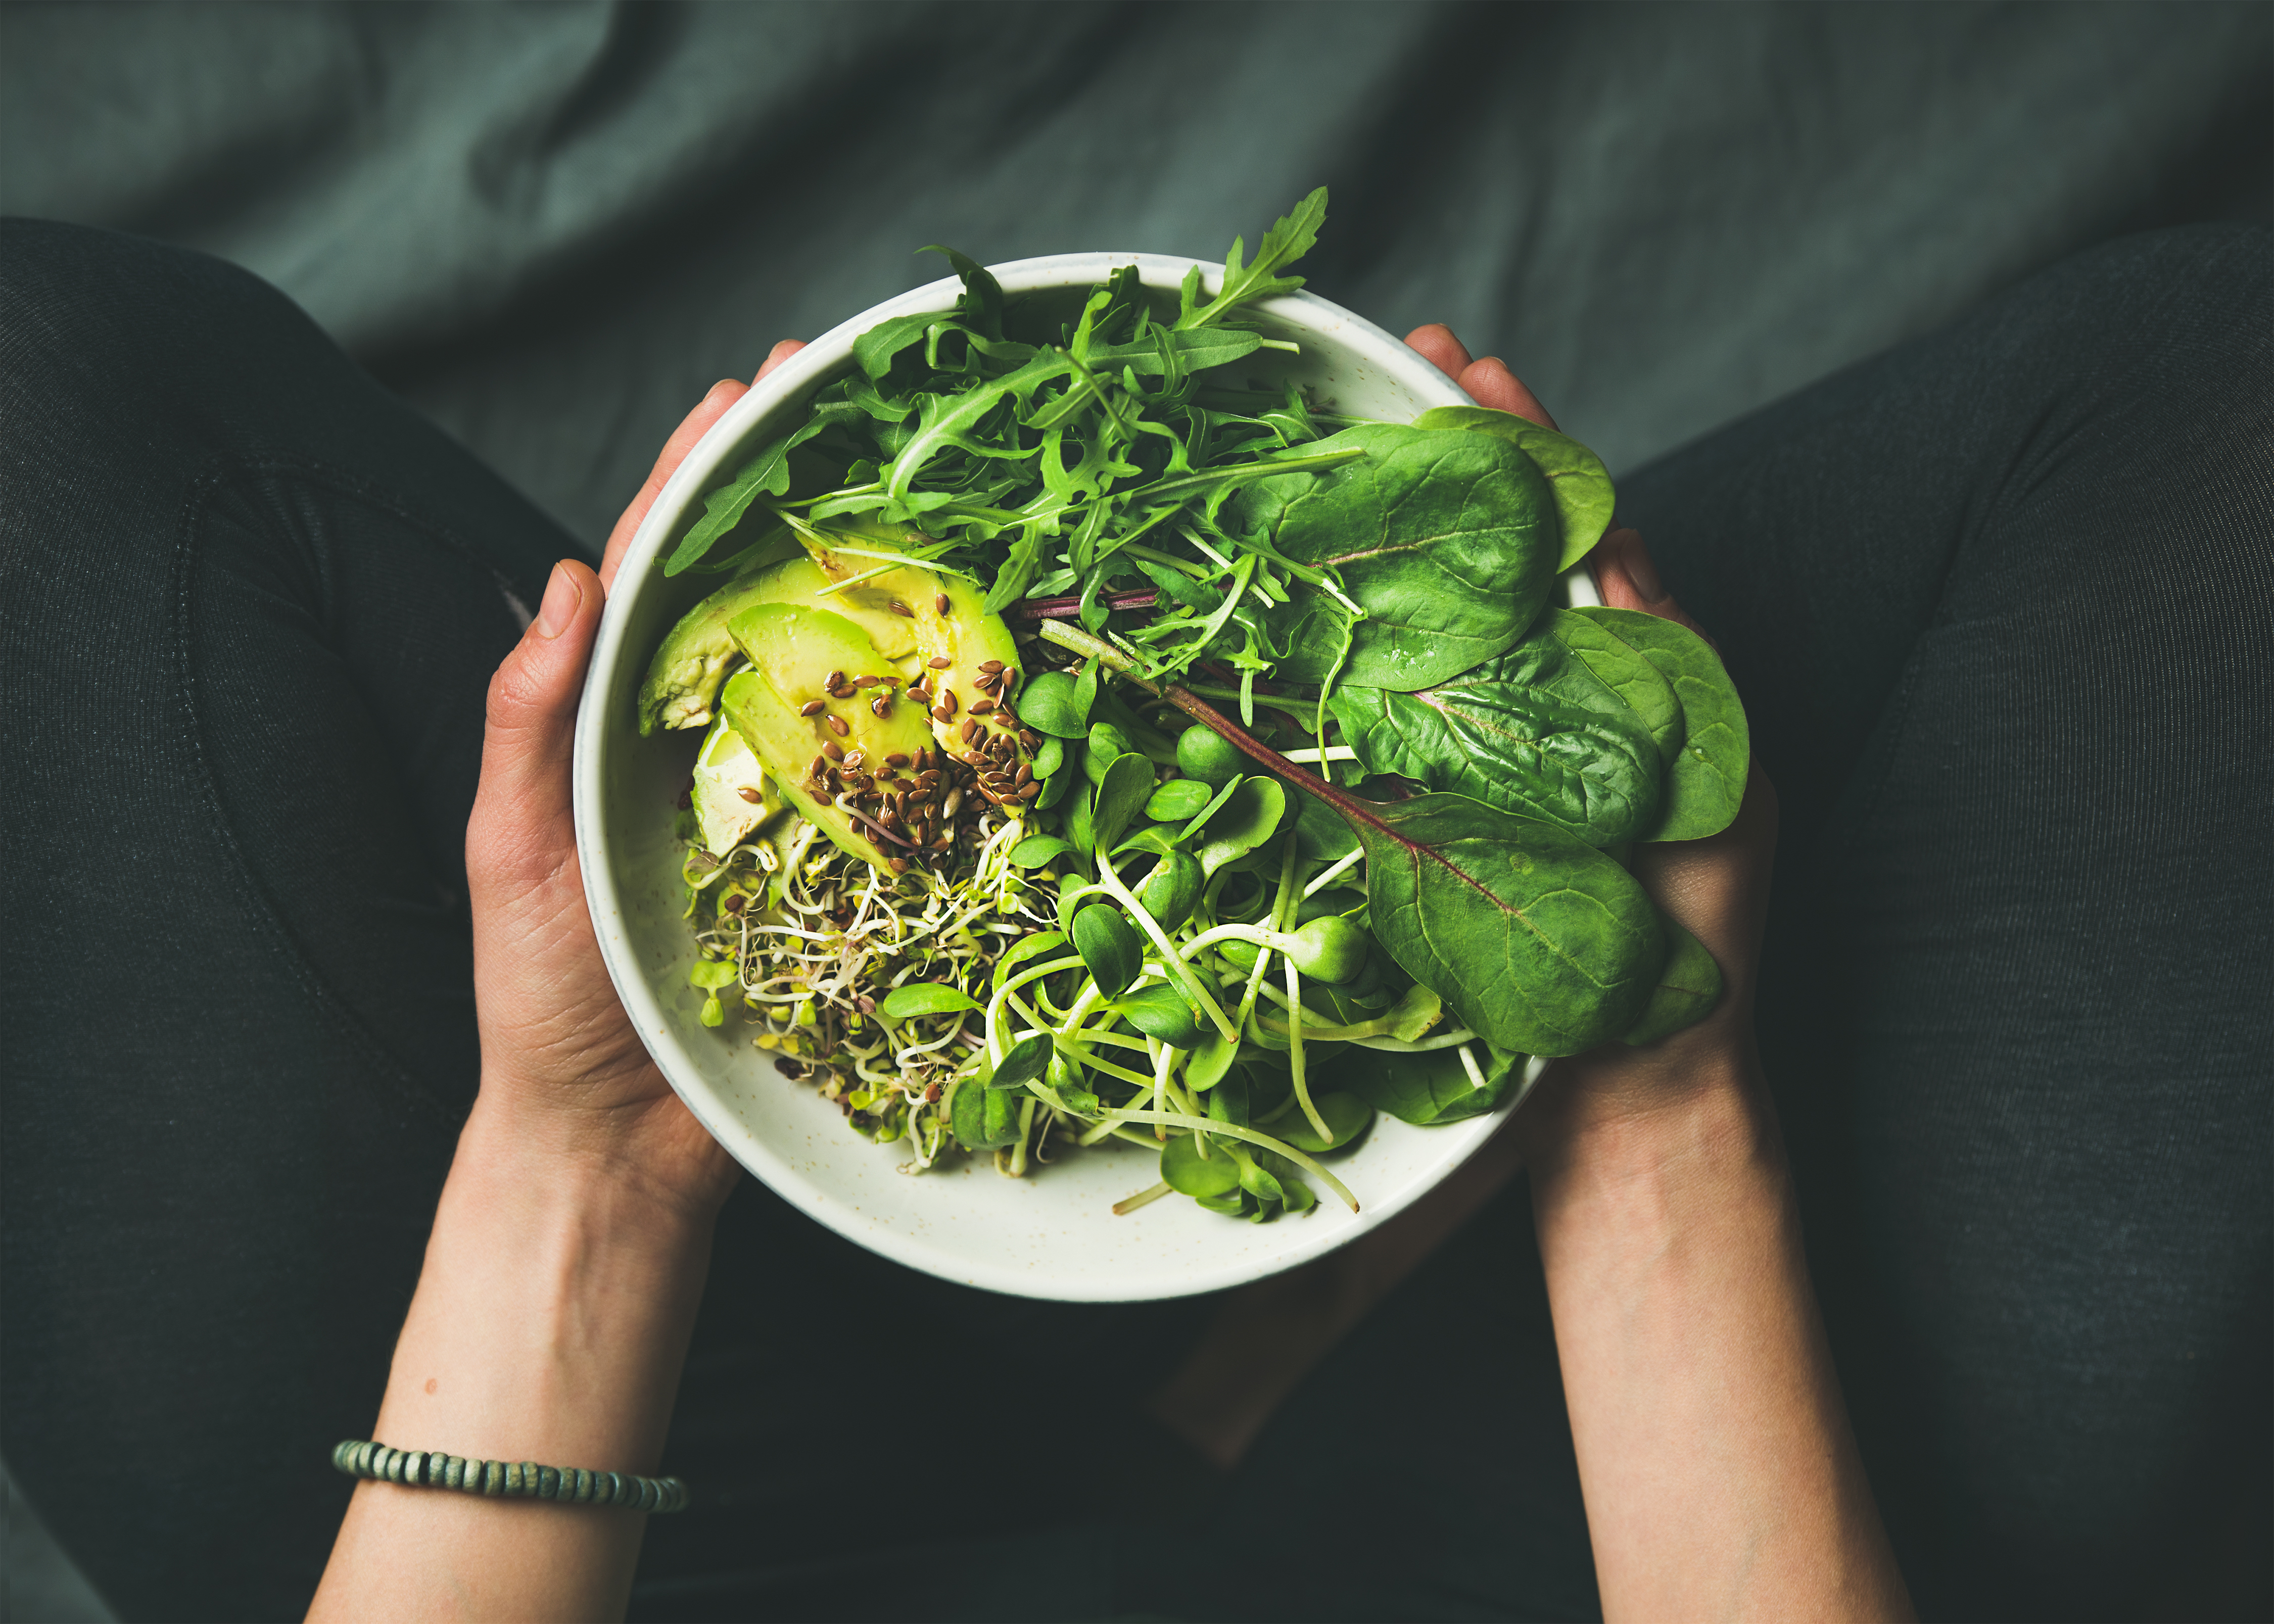 A recent report published by the Intergovernmental Panel on Climate Change reveals that a plant-based diet balanced with protein would be far healthier for both the climate and human beings, and recommends that people eat less meat